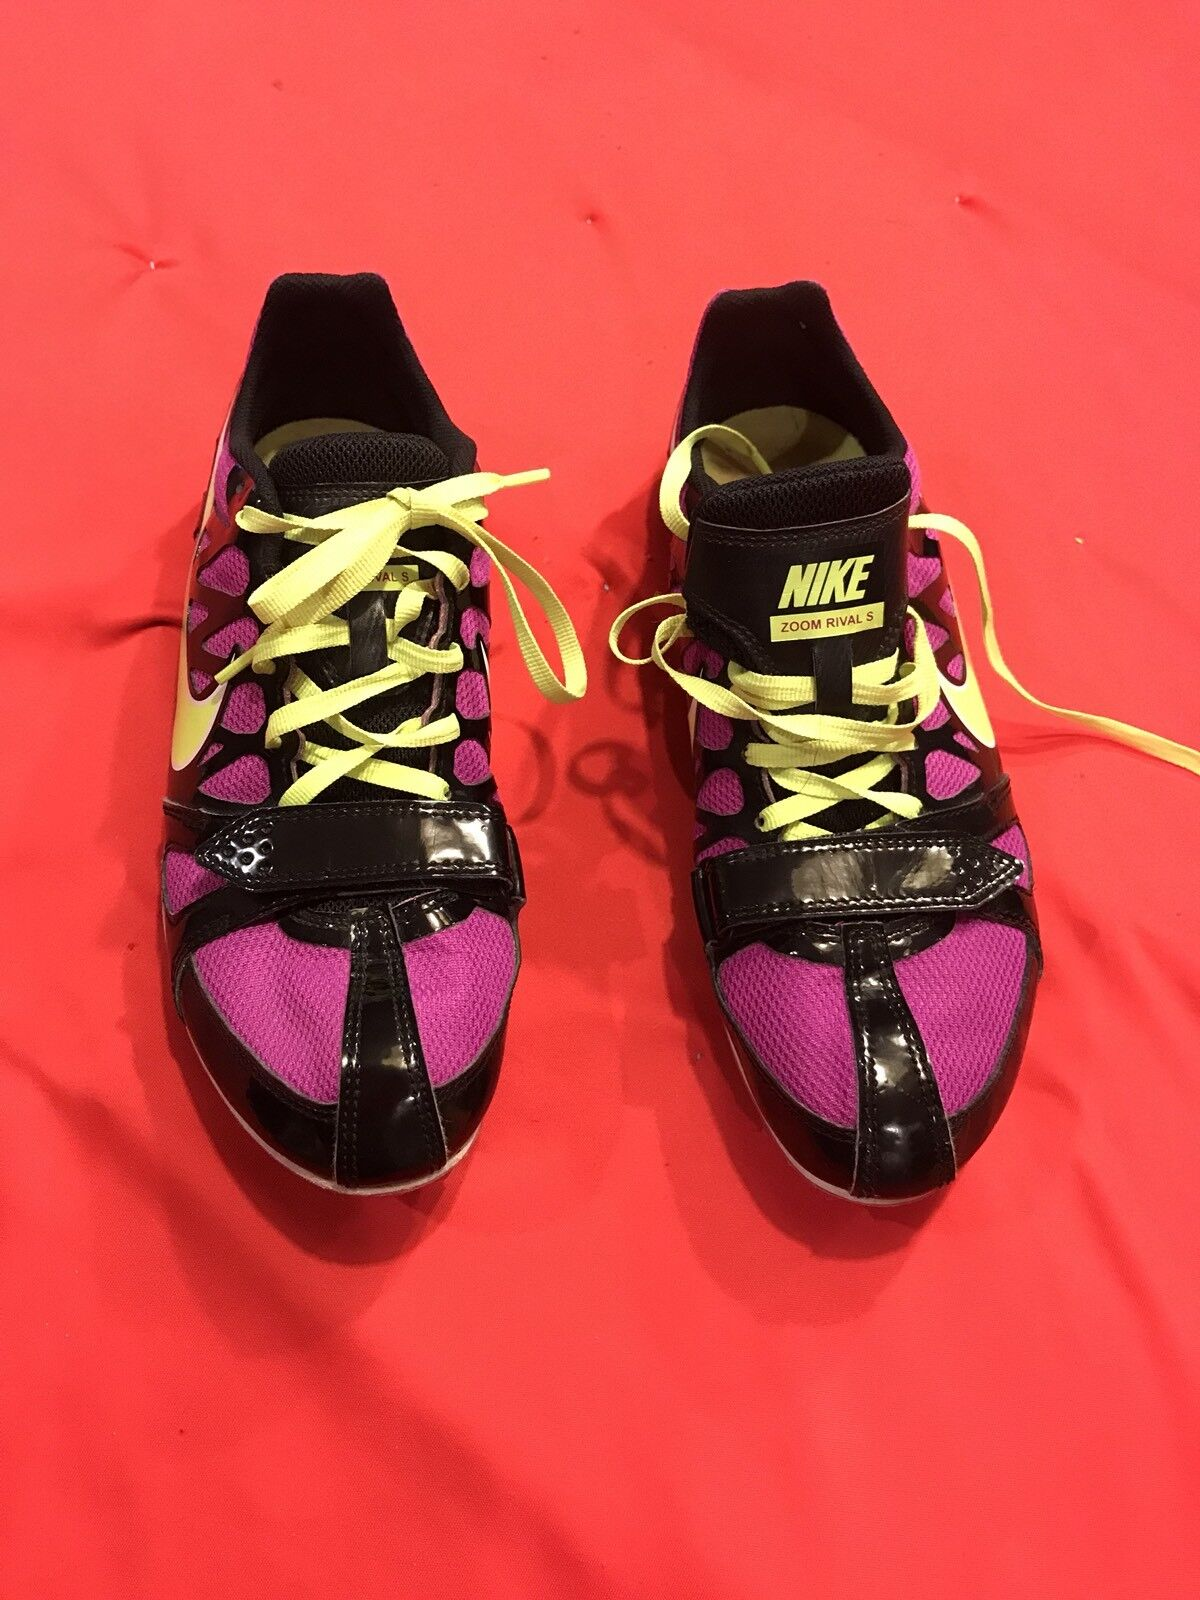 Nike Zoom Rival S Ladies Track Shoes Price reduction Comfortable The most popular shoes for men and women